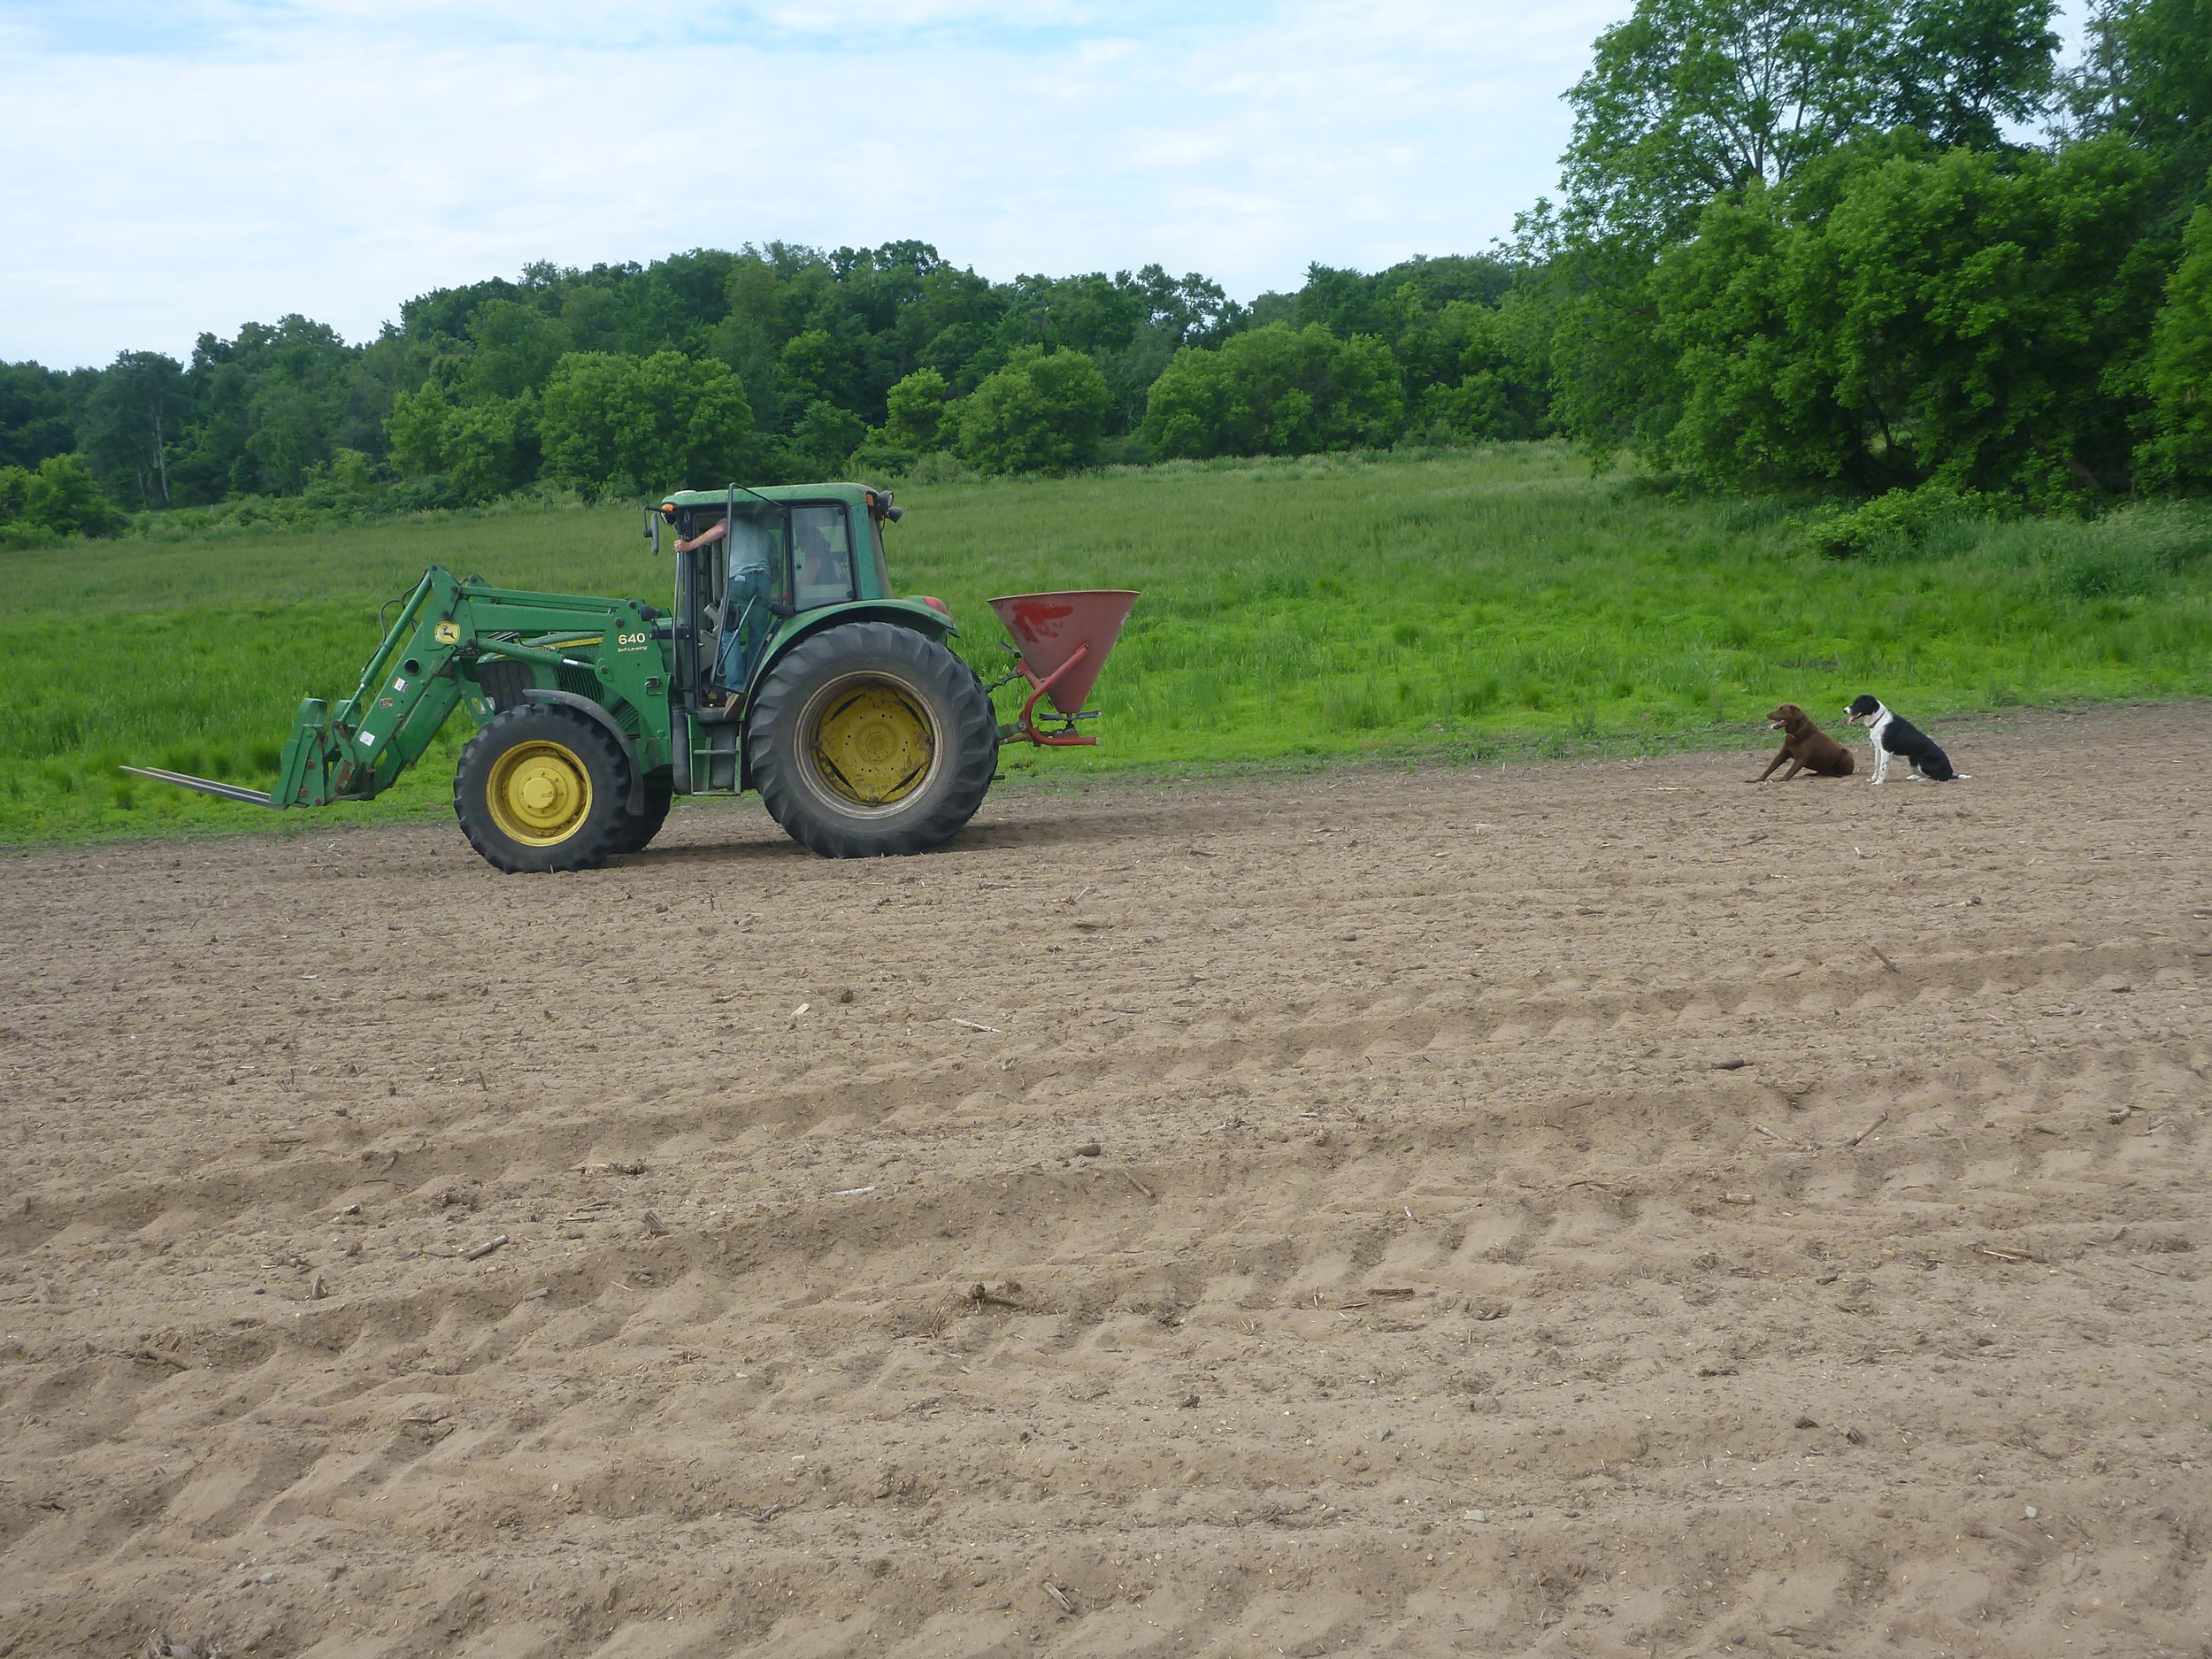 Planting the oats using the spreader.   You can see just how sandy the soil is in this parcel.  The dogs, though enthusiastic, were not helpful during this process at all.  The wetland (not yet planted) is visible in the background.